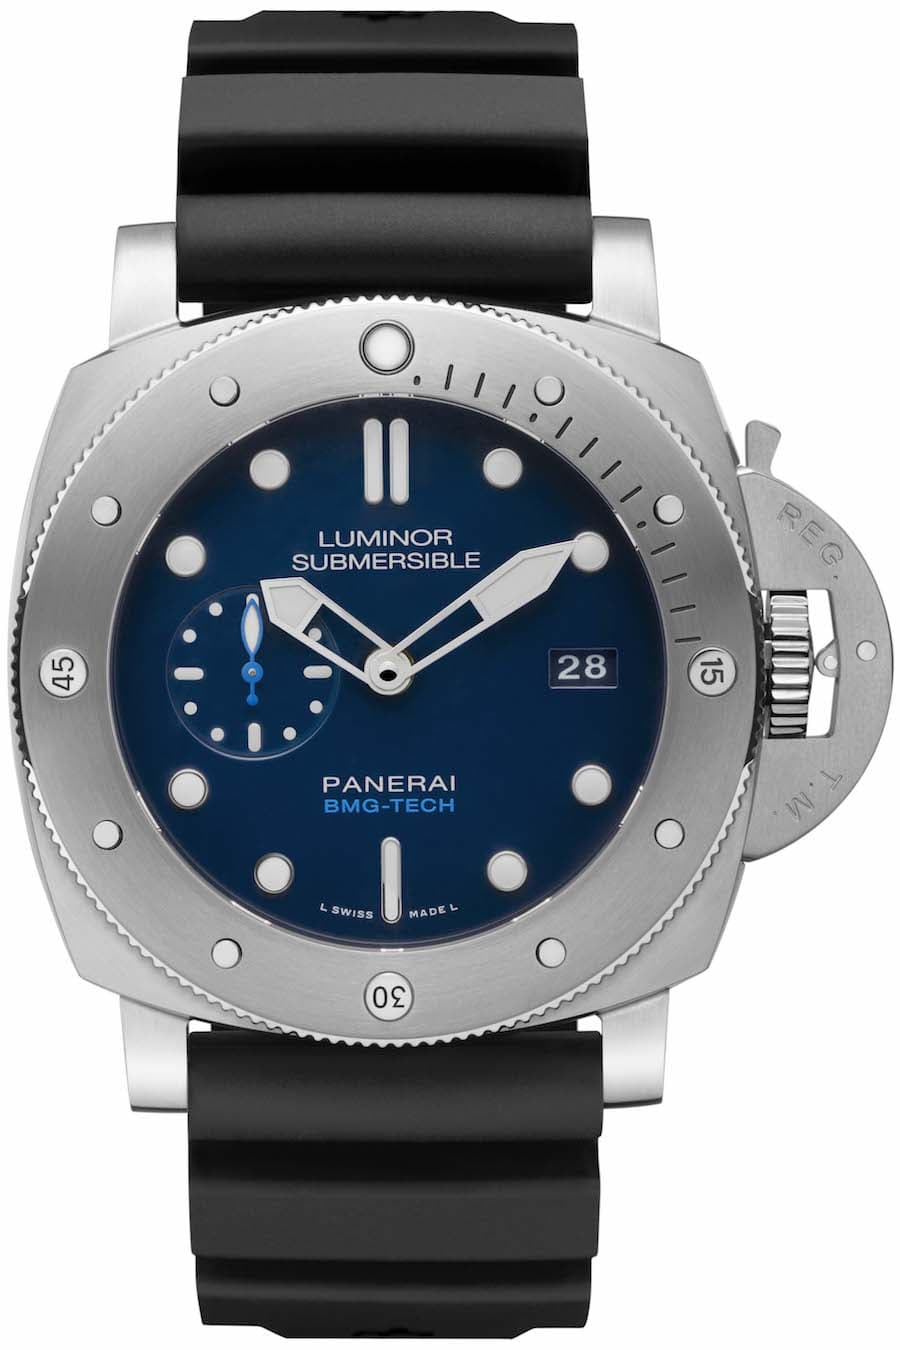 Panerai Luminor Submersible 1950 BMG-Tech 3 Tage Automatik PAM00692